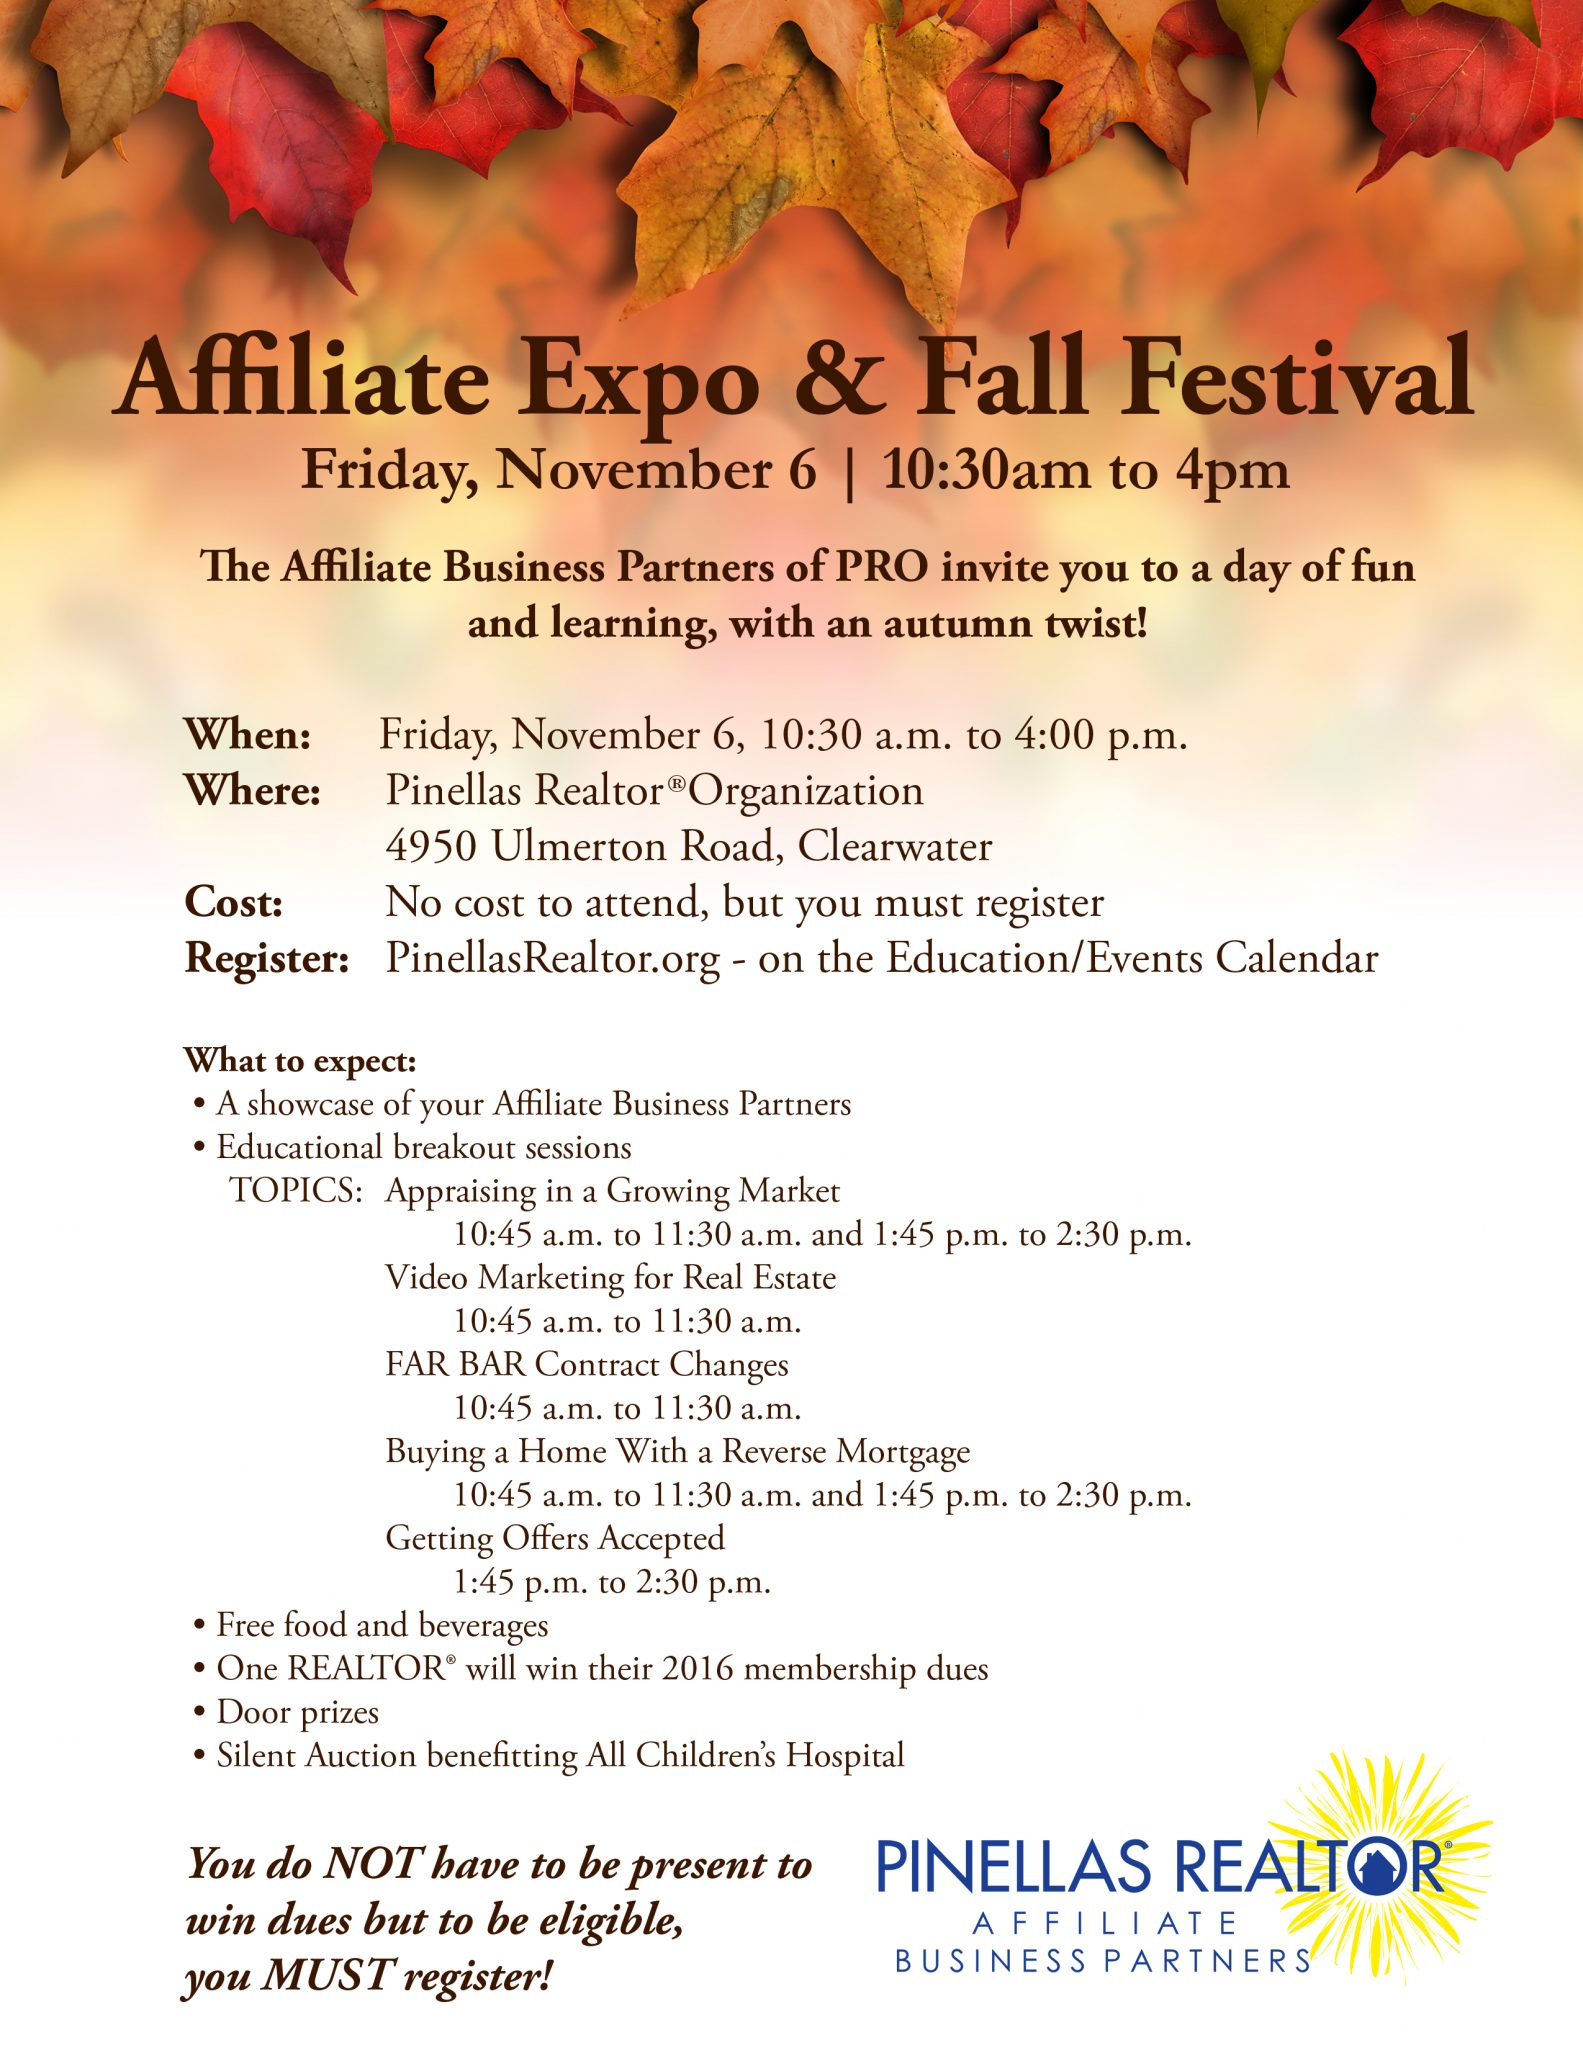 PRO Affiliate Expo & Fall Festival